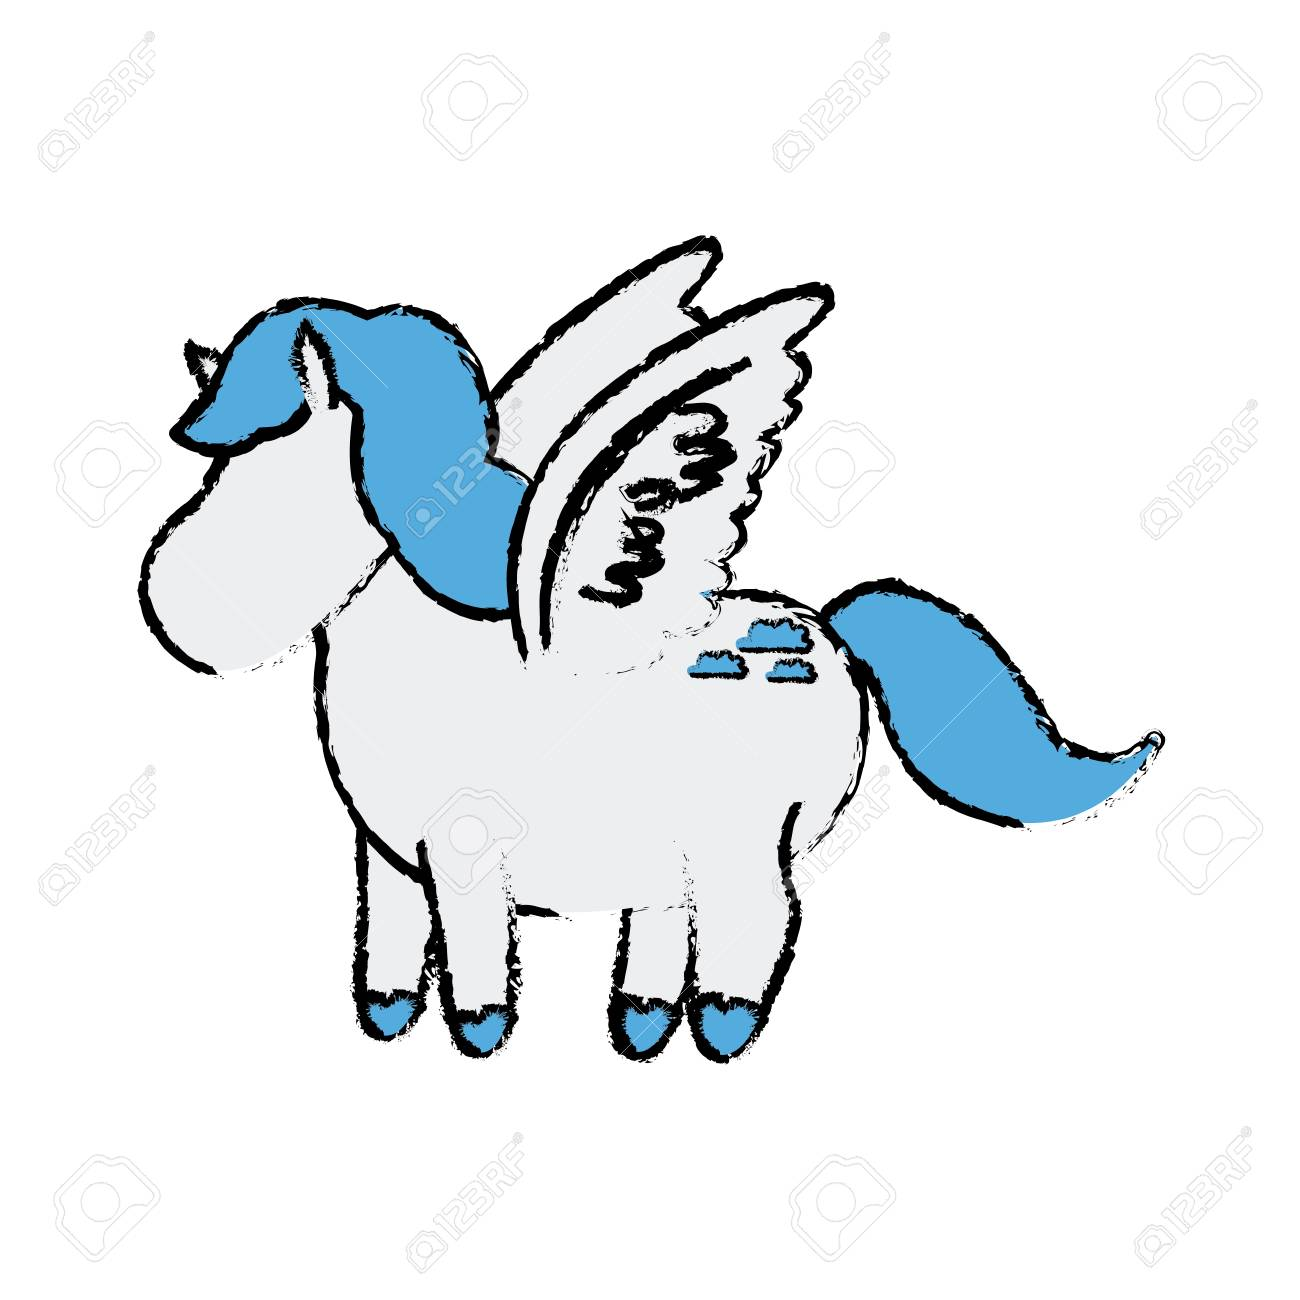 Cute Cartoon Little Funny Running Horse Beautiful Pony Vector Royalty Free Cliparts Vectors And Stock Illustration Image 80945106